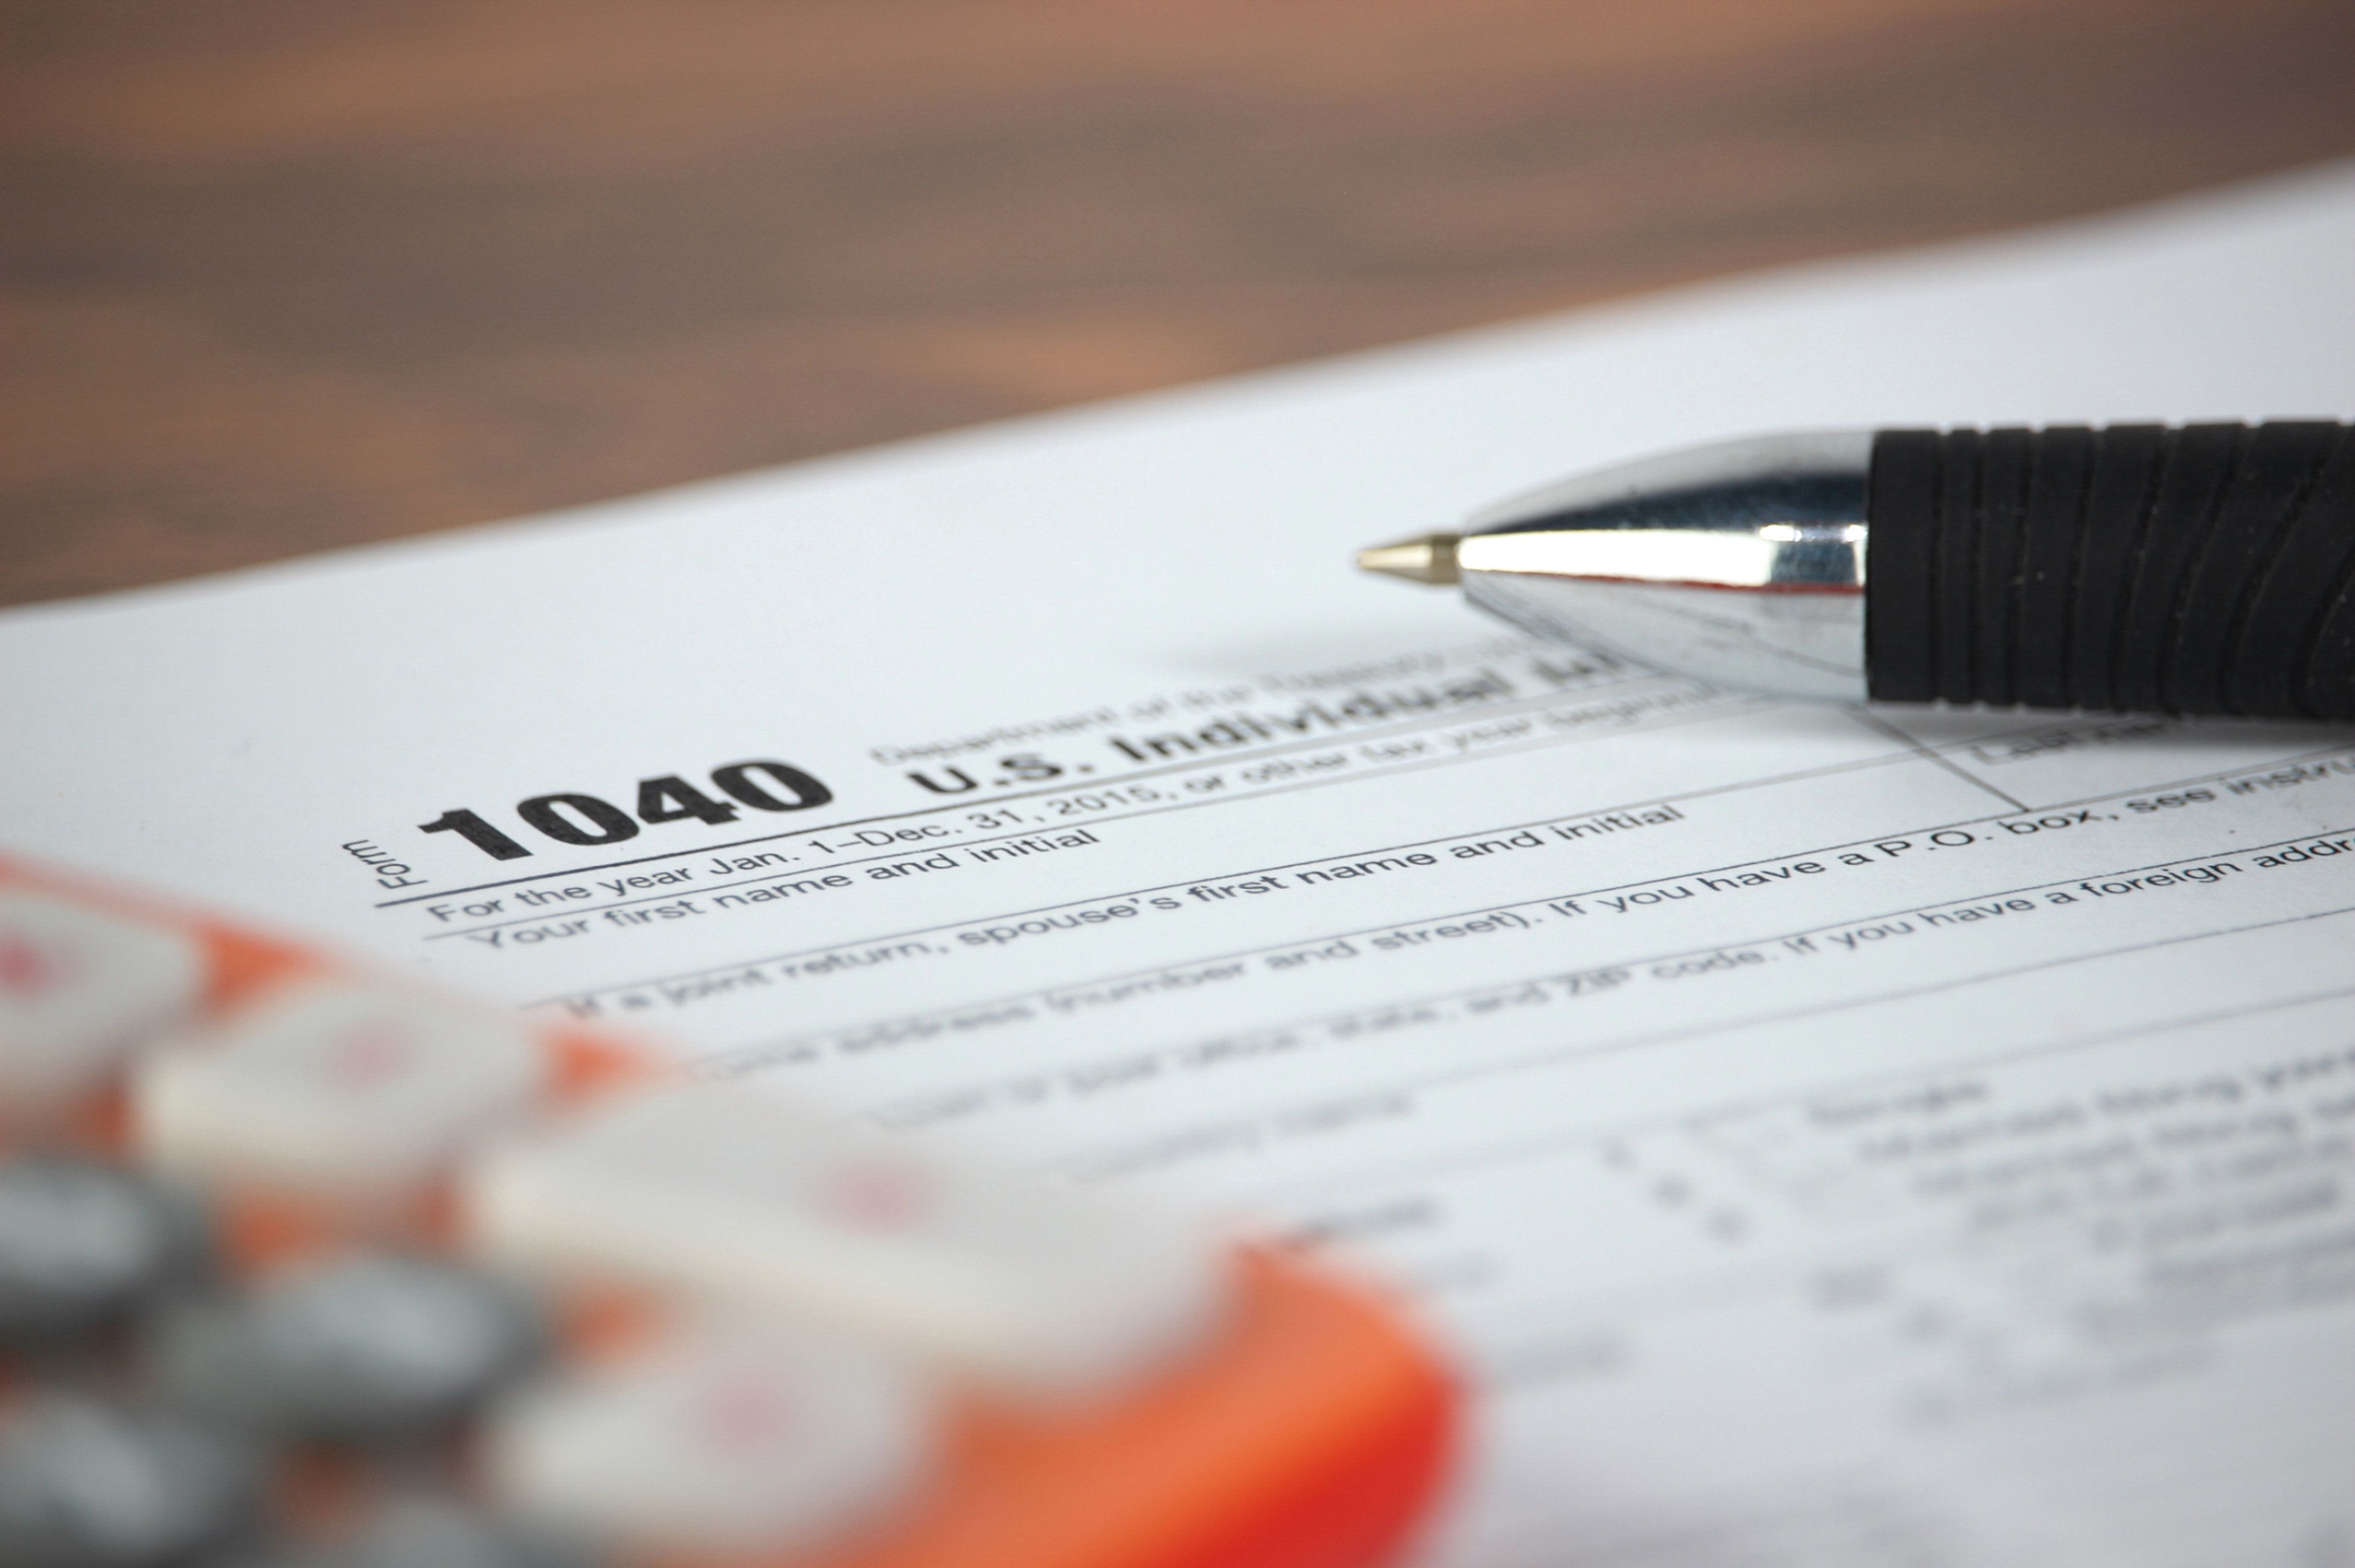 10 Tax-Related Things You Can Do Right Now To Save Money And Stress